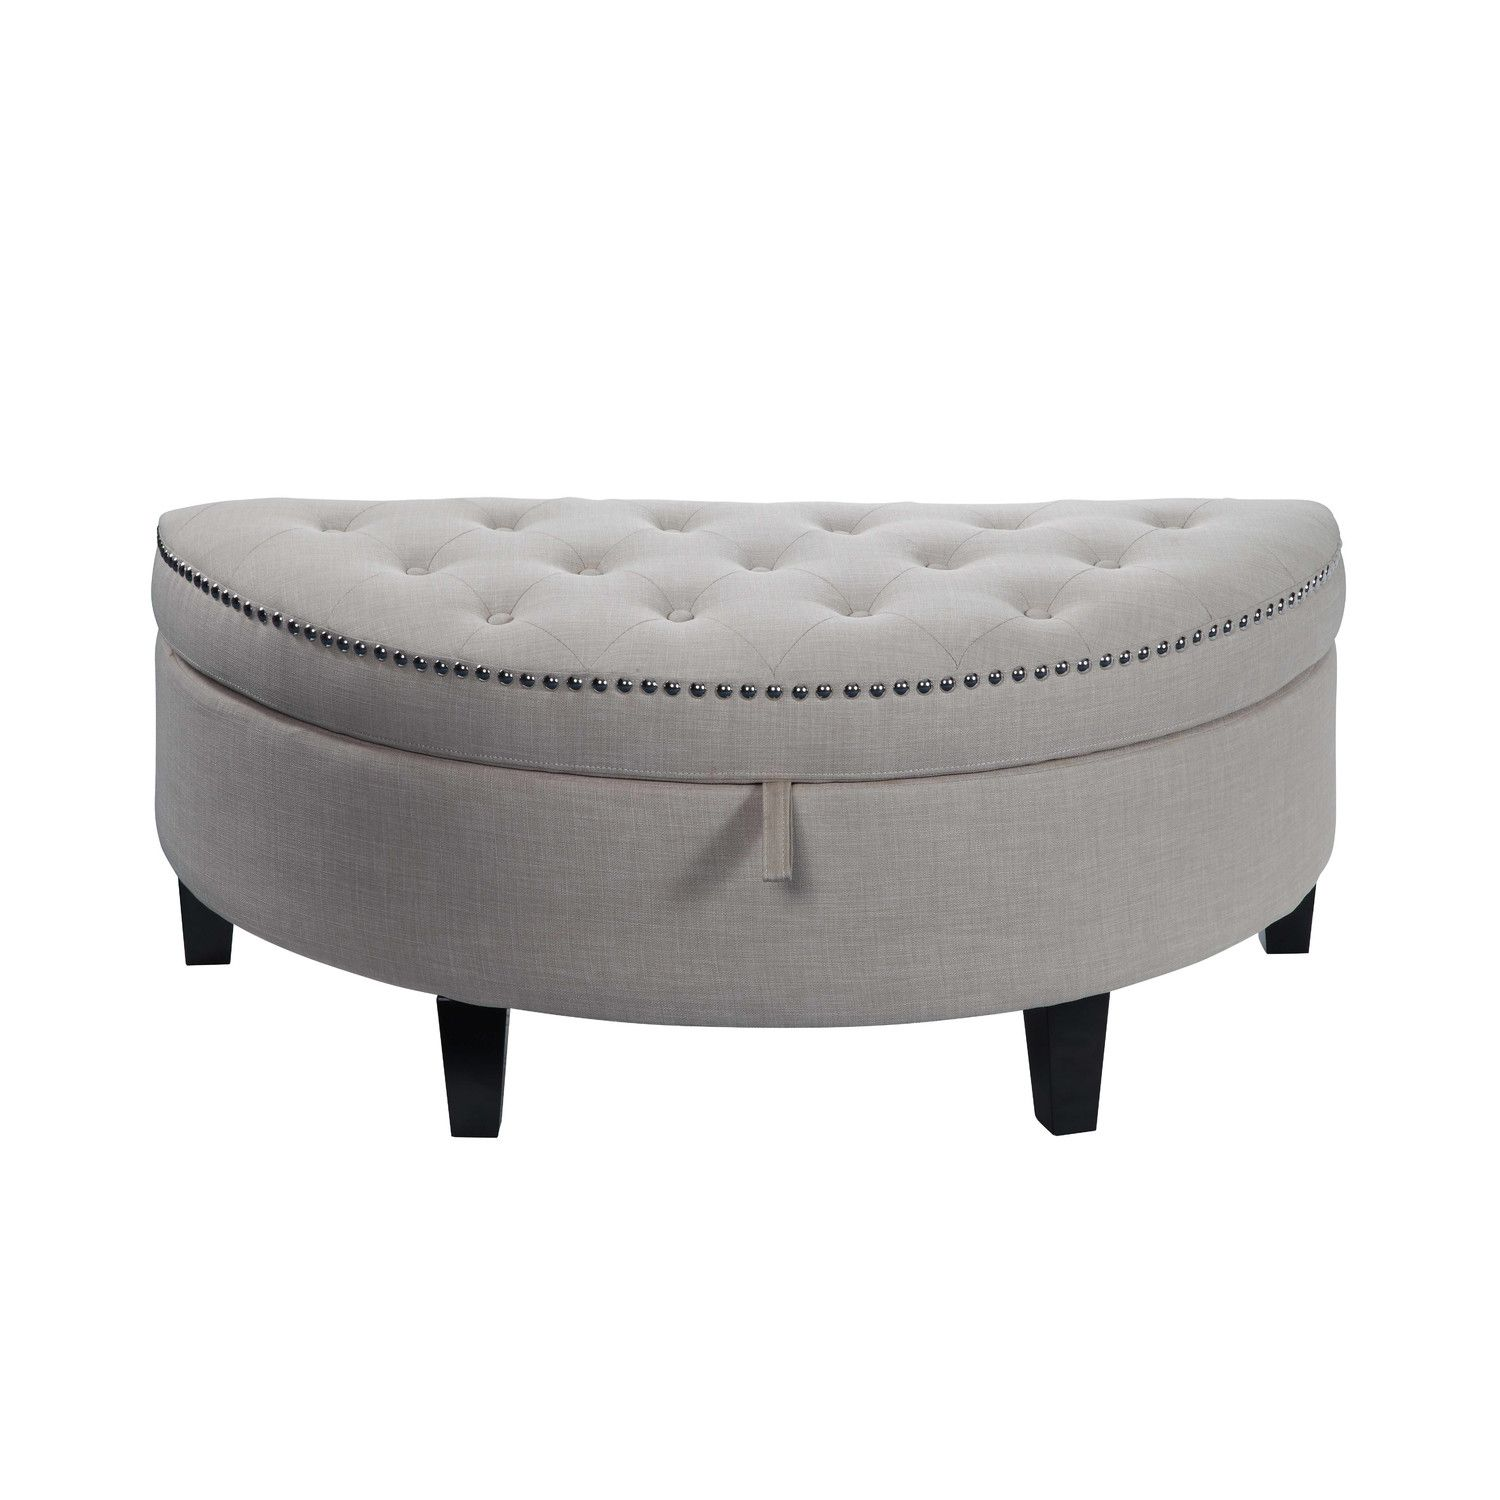 Semi Circle Gray Storage Ottoman Possibly For The Bedroom With